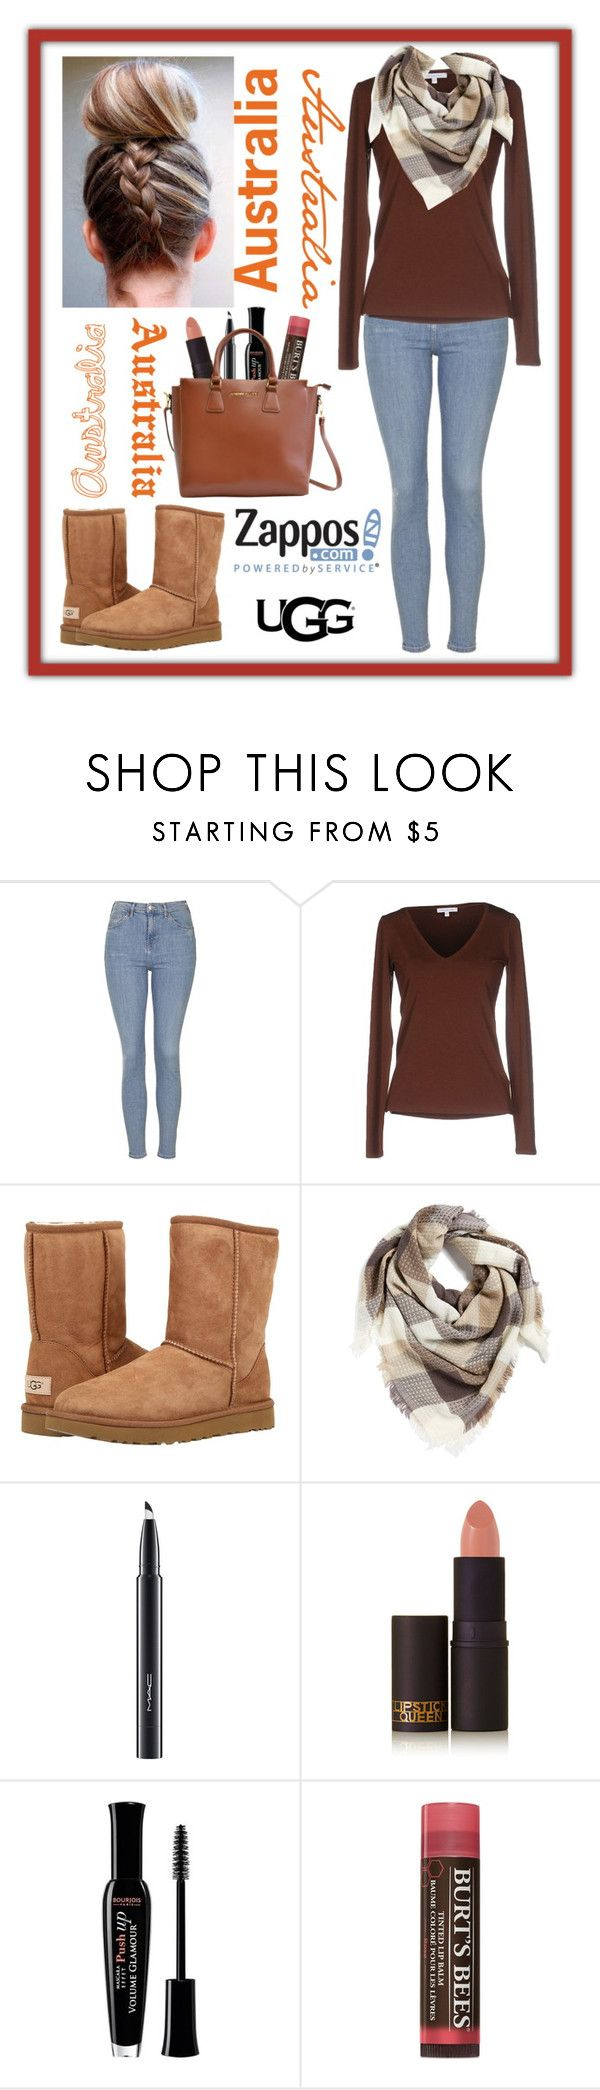 """""""The Icon Perfected: UGG Classic II Contest Entry"""" by haybeebaby ❤ liked on Polyvore featuring Topshop, Patrizia Pepe, UGG Australia, BP., MAC Cosmetics, Lipstick Queen, Bourjois, Burt's Bees, Adrienne Vittadini and ugg"""